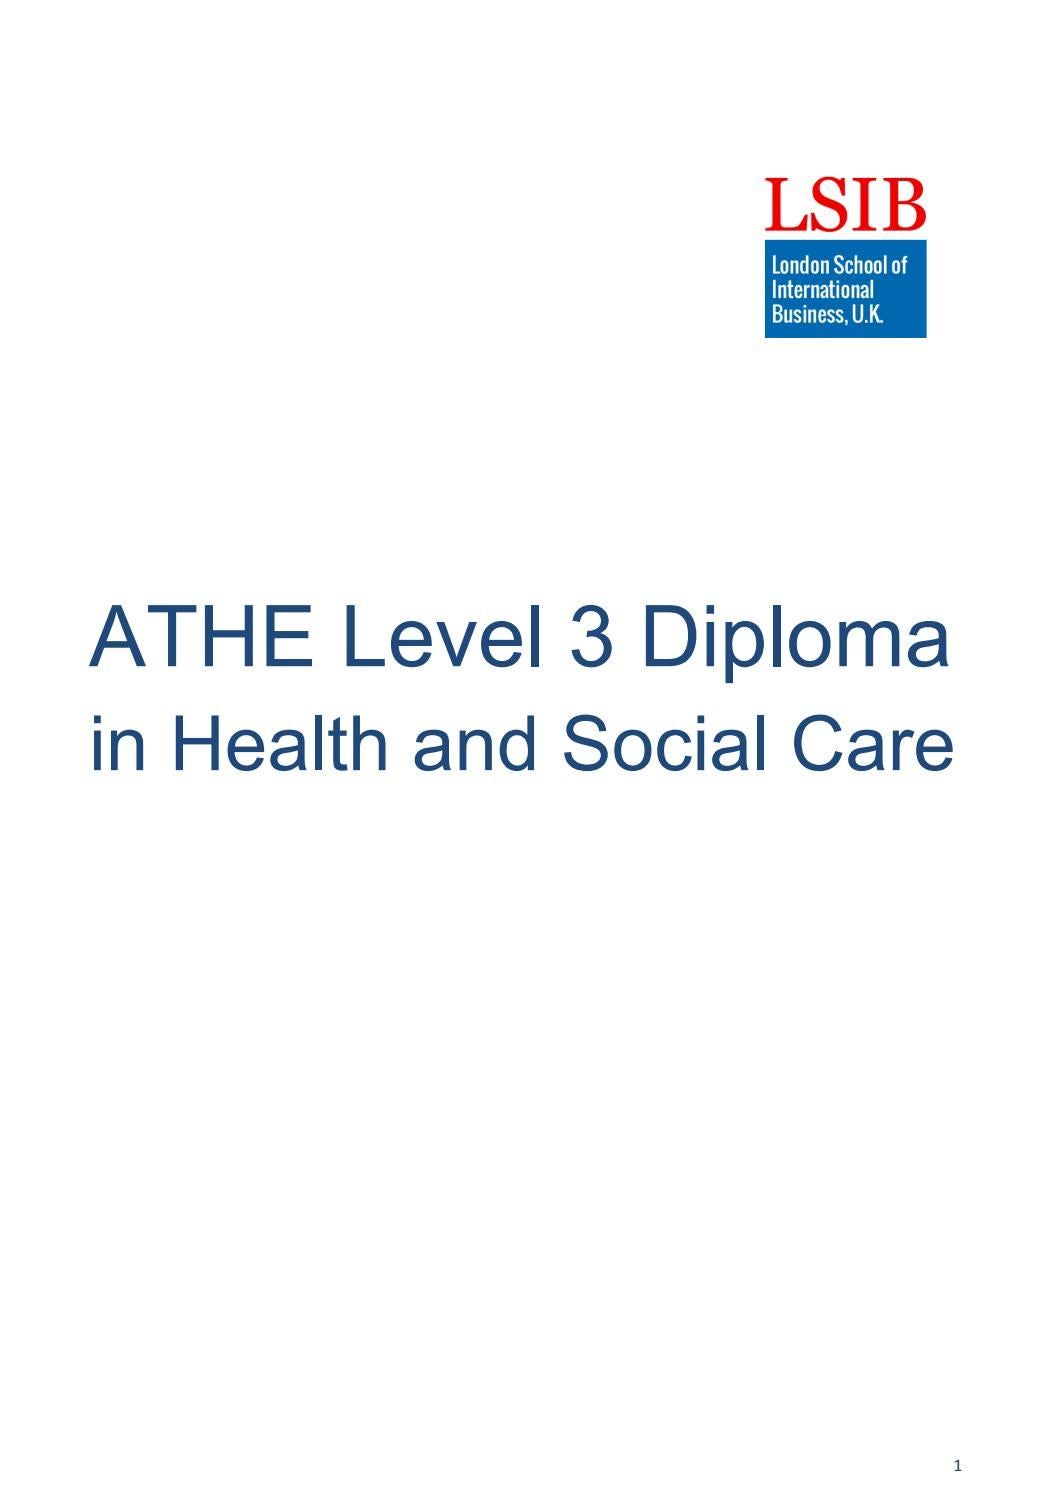 lsib,uk - level 3 diploma in health and social care by lsib - issuu